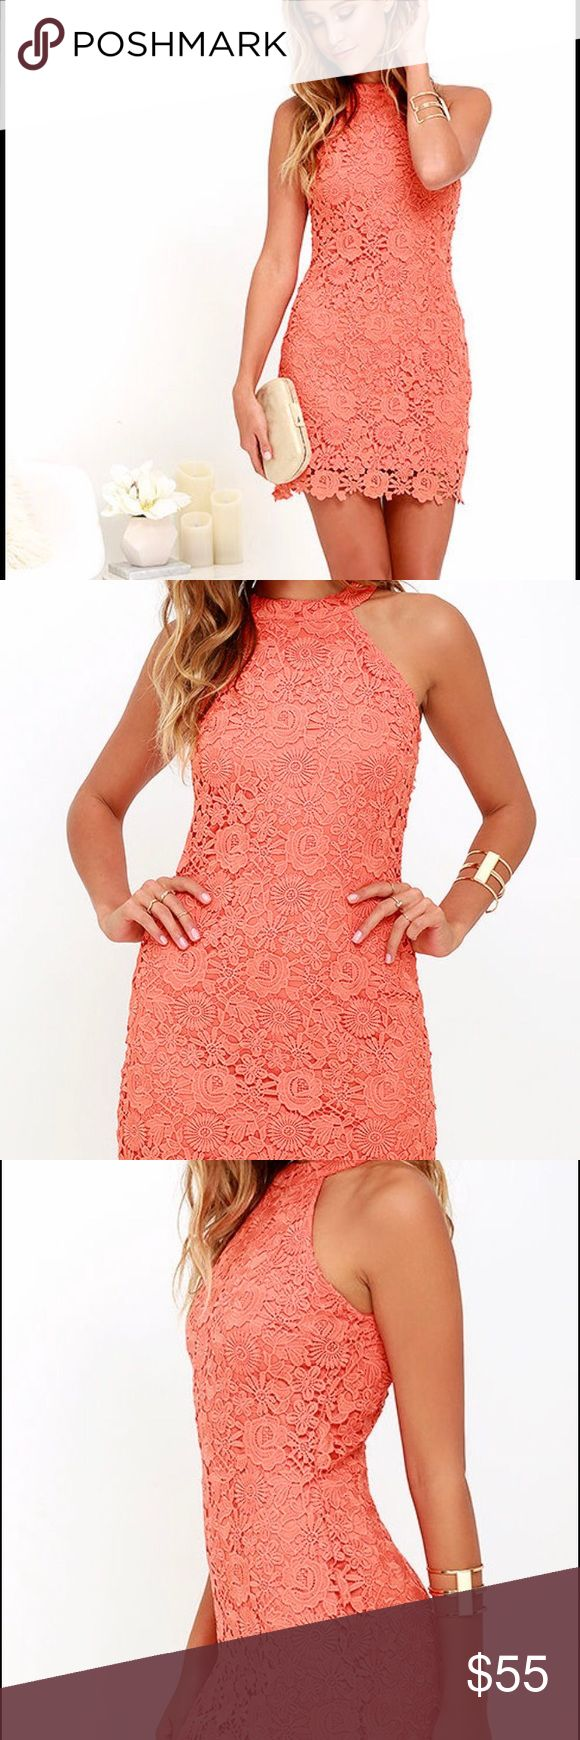 Love Poem Coral Lace Dress by Lulus (XS) NEW NEW (no tags) Short Coral Lace Dress. Back zipper. Size XS by Lulus Lulus Dresses Mini